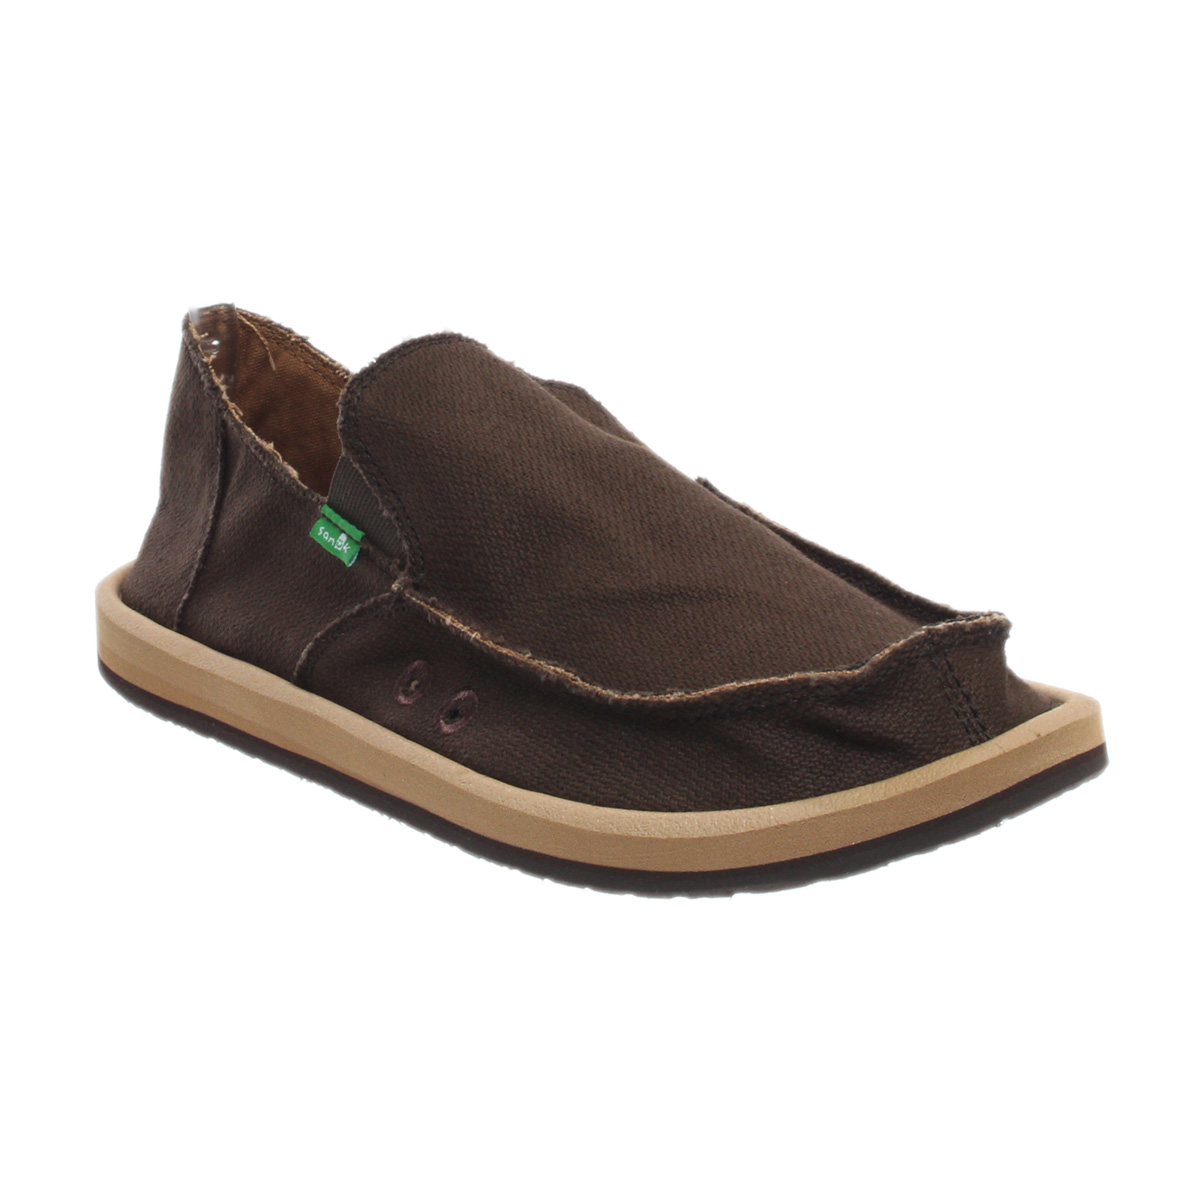 Mens Hemp Slip On Shoes